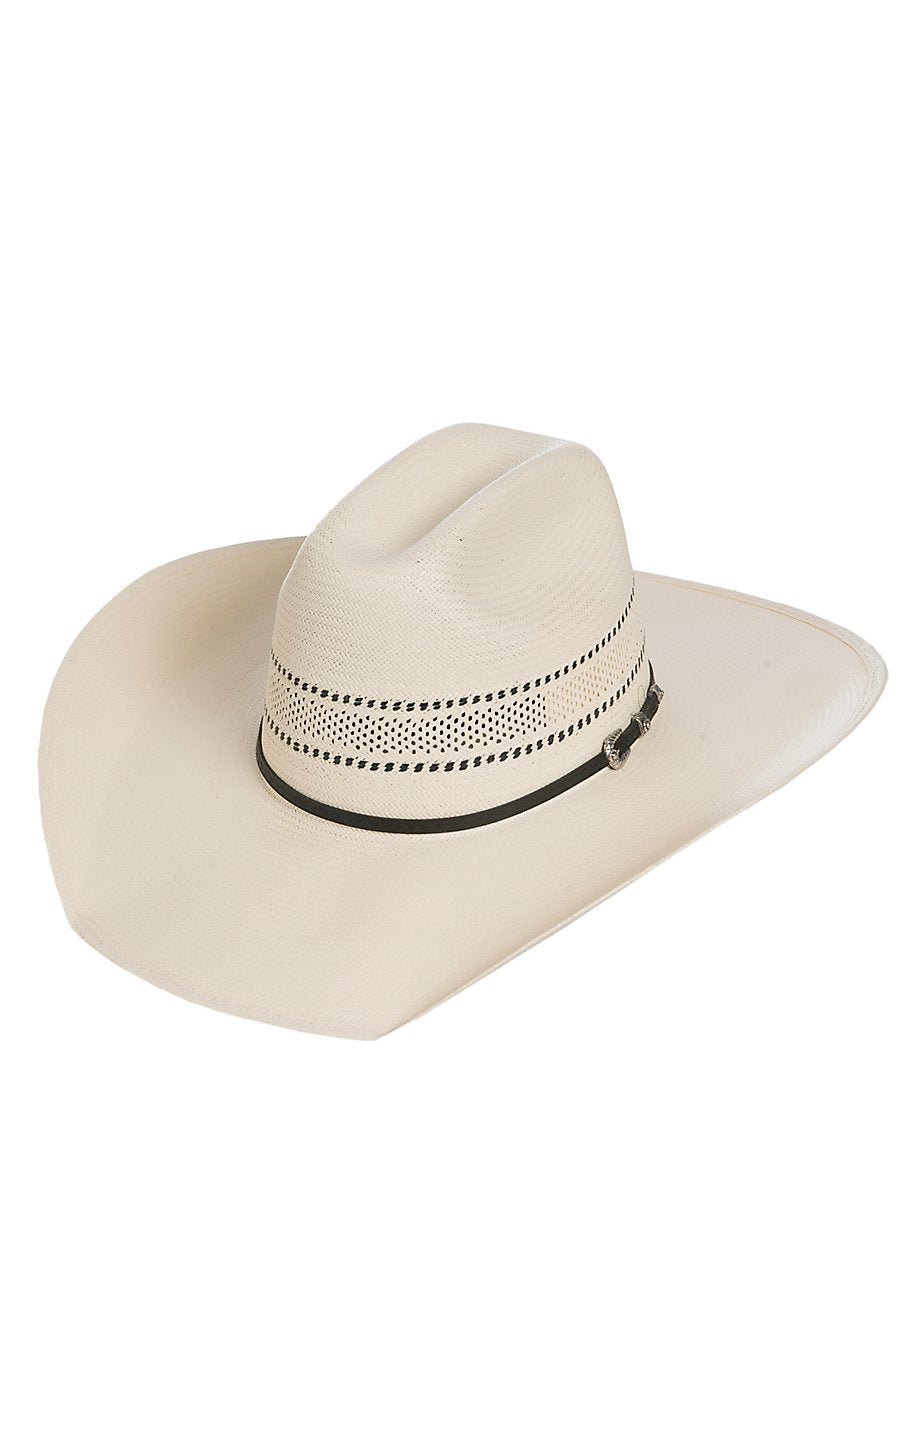 Hats - Stetson Wheeler Hat - Stetson - Mock Brothers Saddlery and Western Wear